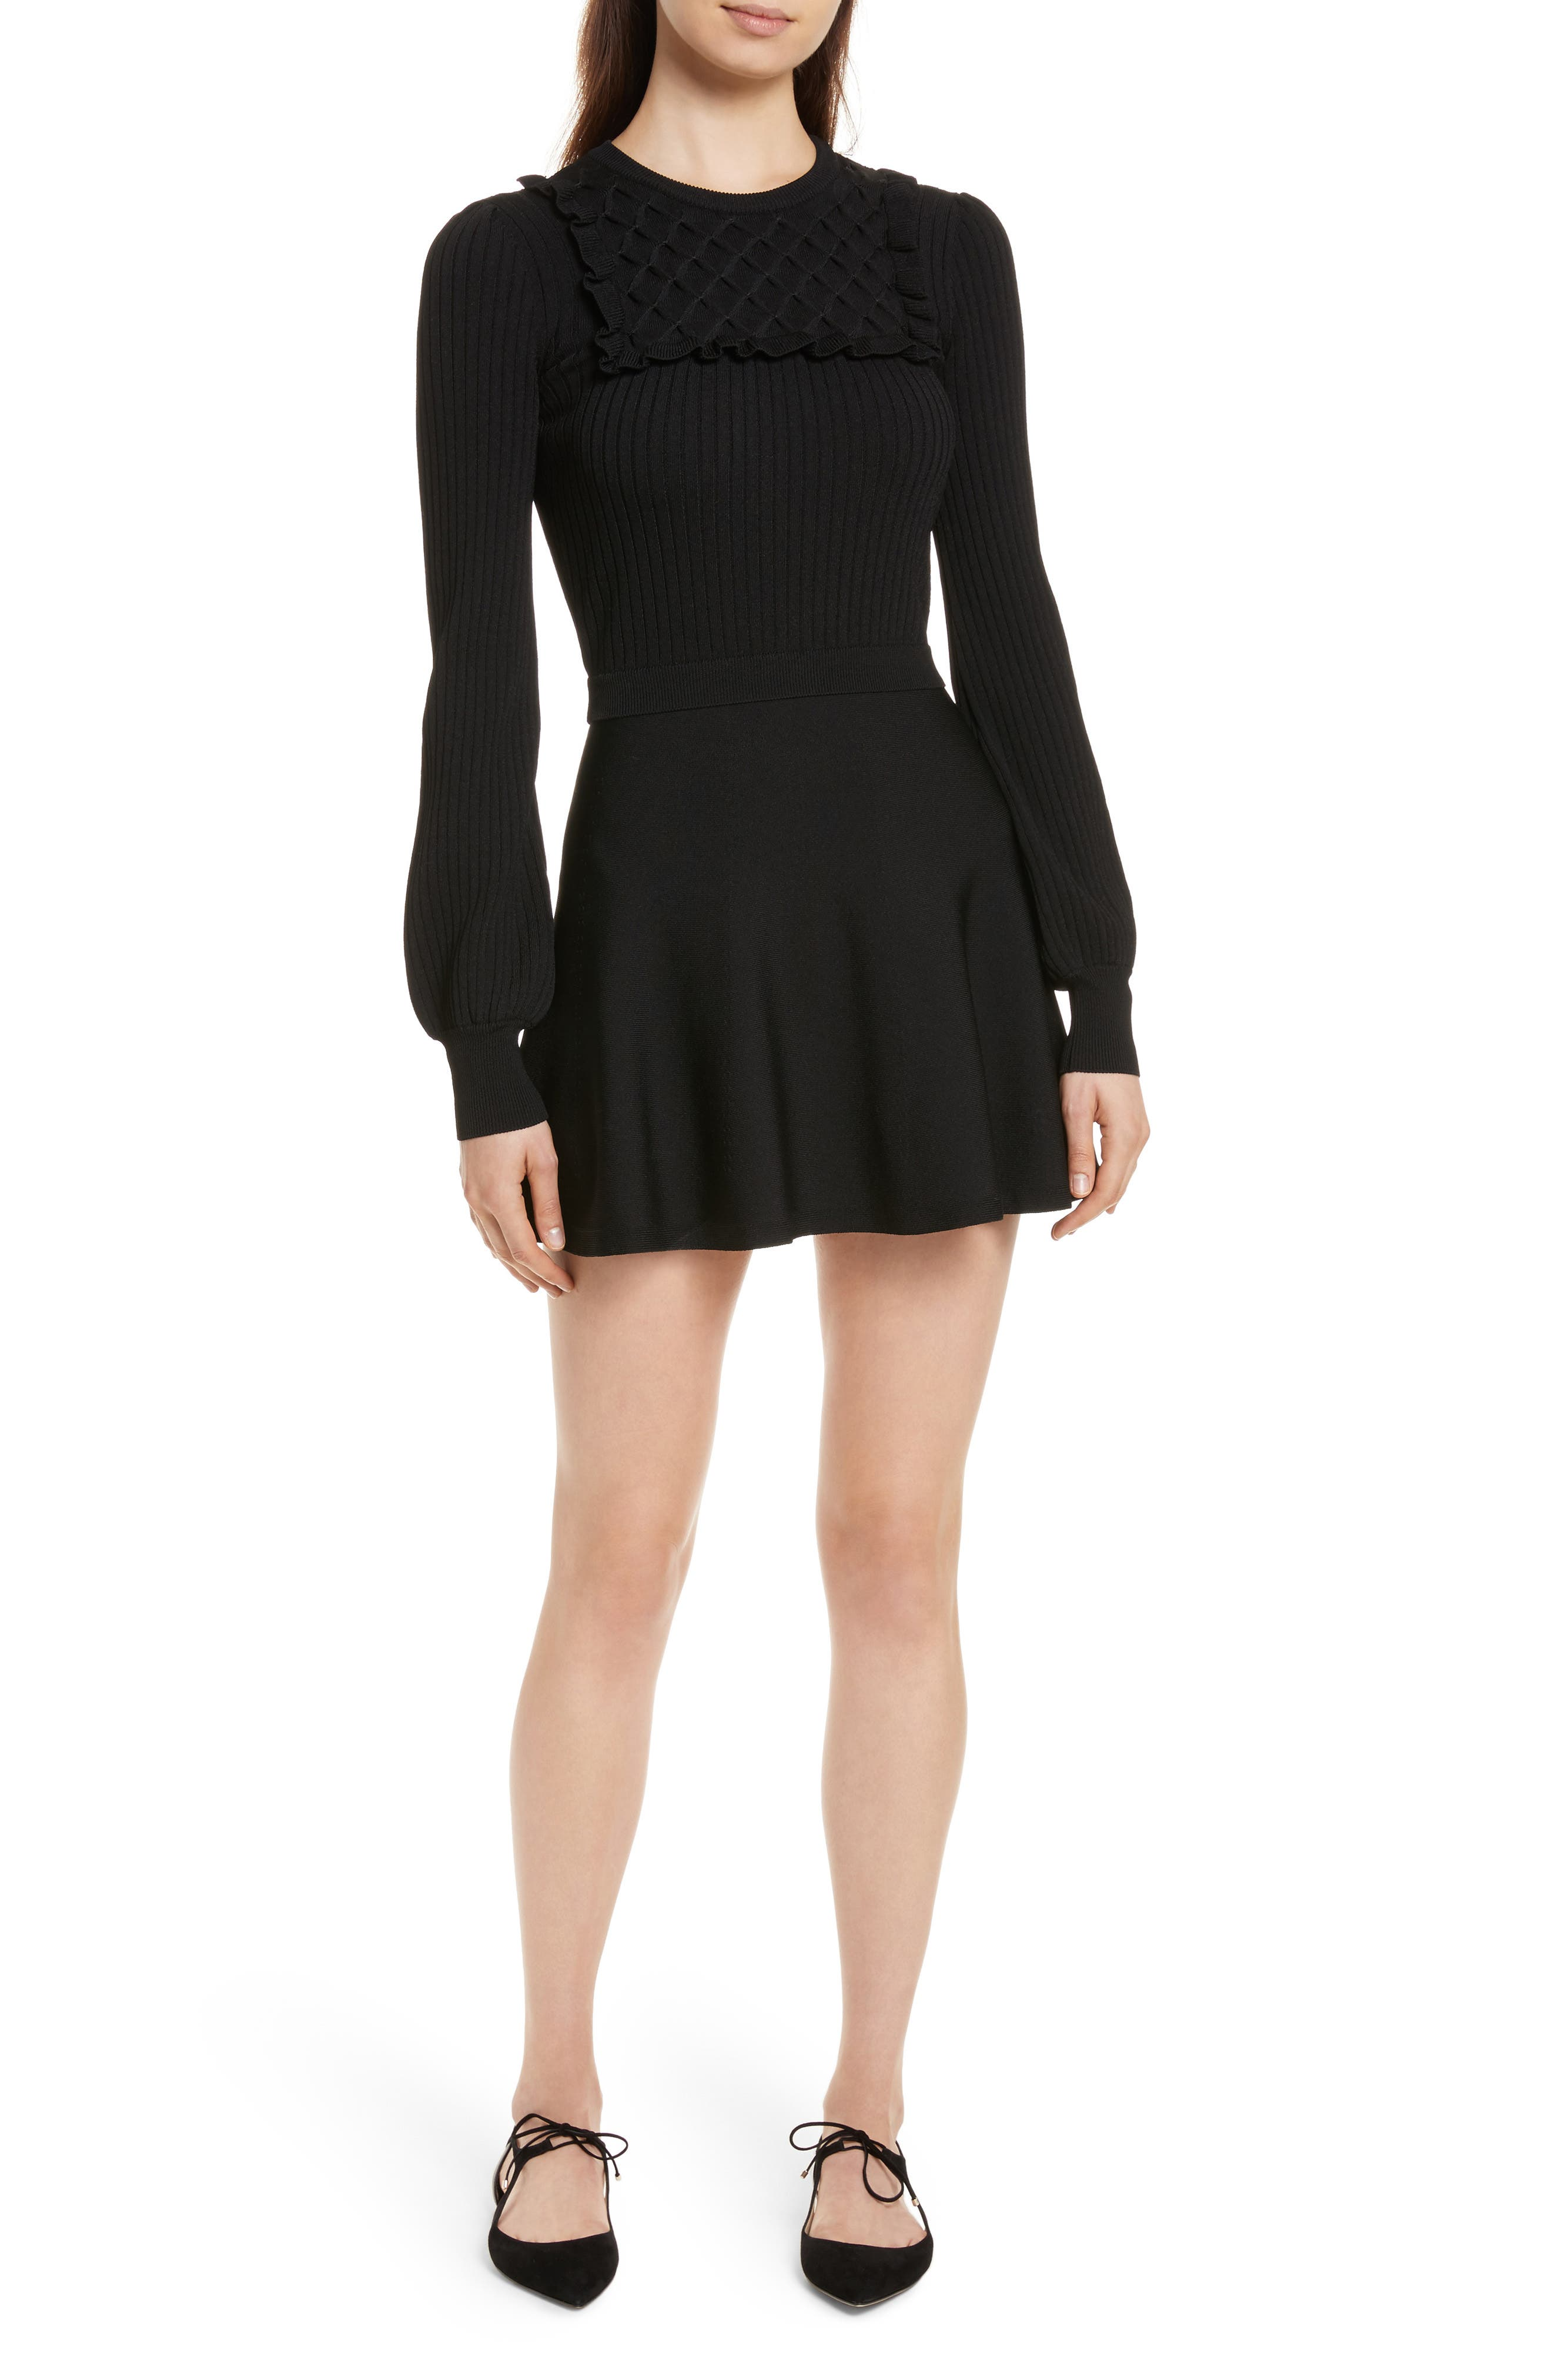 Hand Stitched Stretch Knit Dress,                             Main thumbnail 1, color,                             Nero